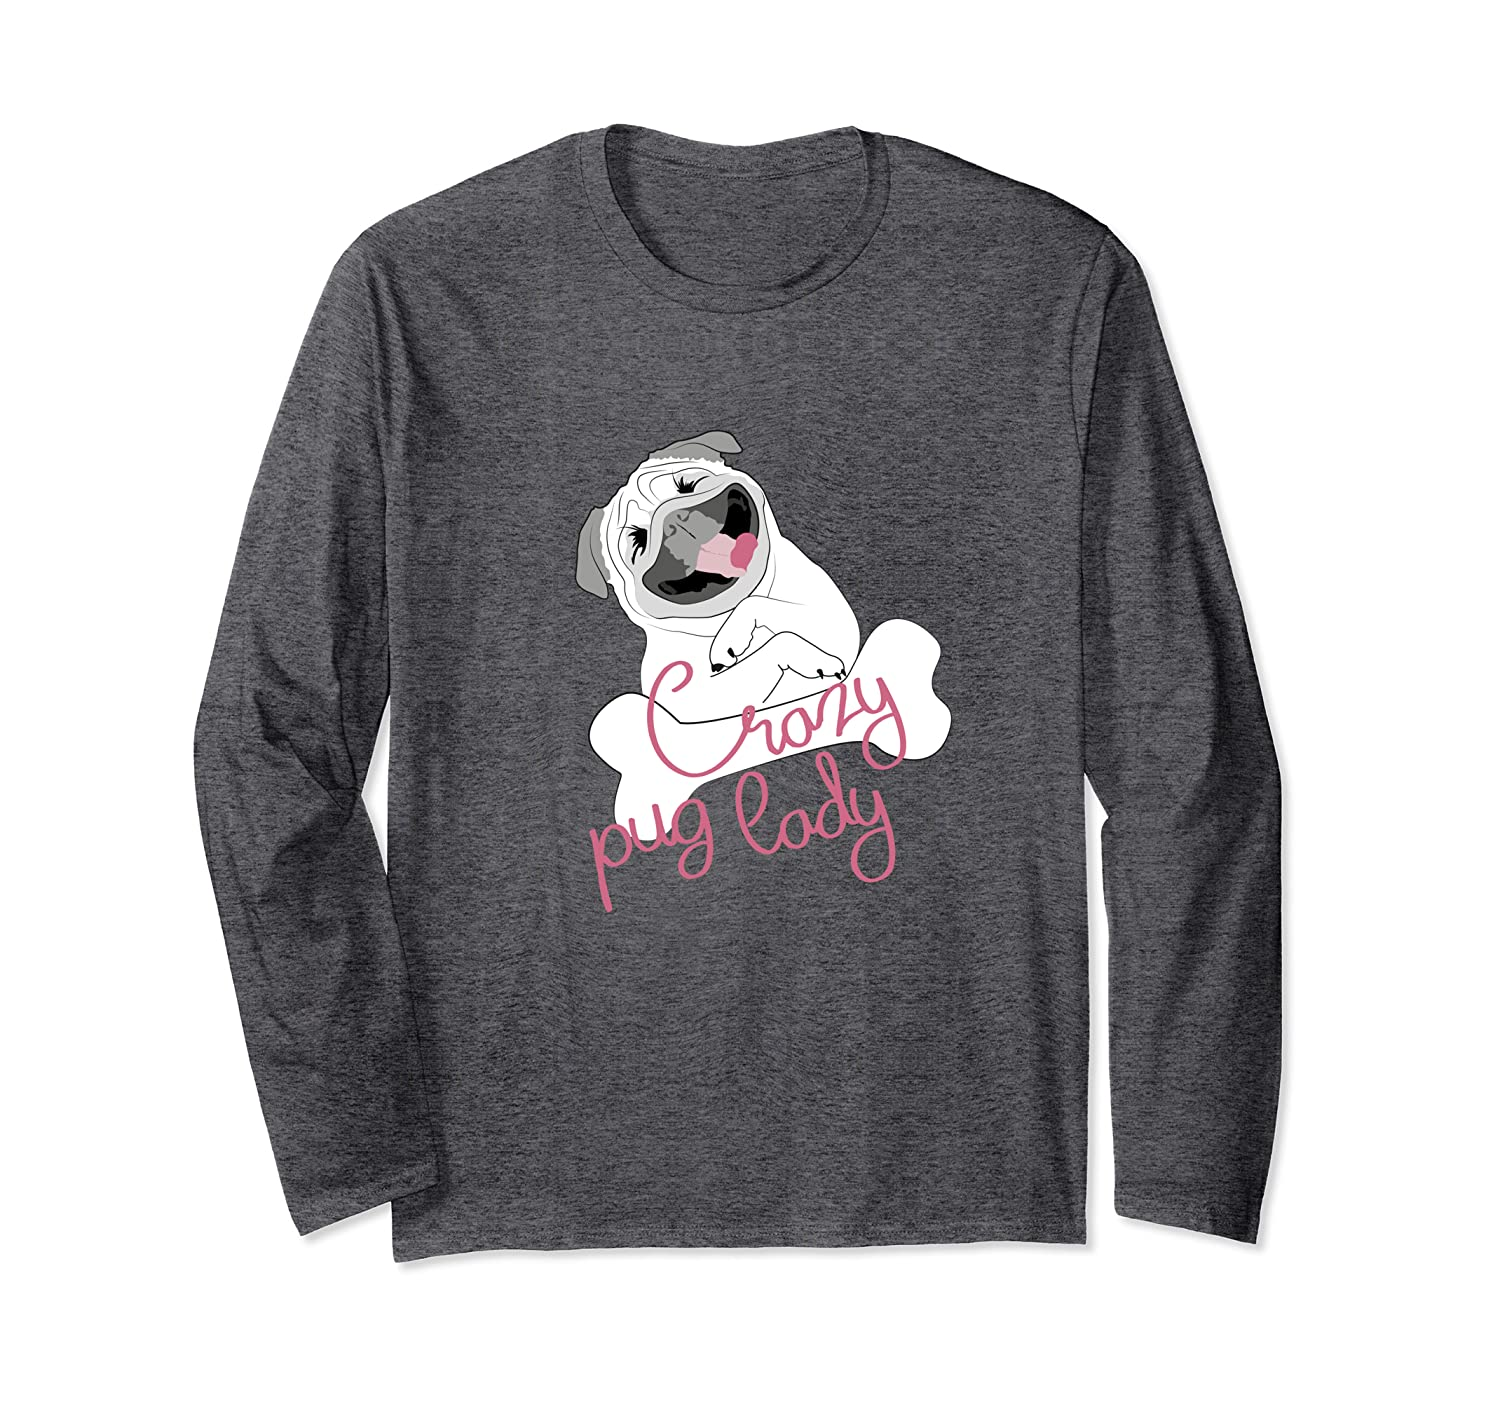 Crazy pug lady, funny pet lover Long Sleeve T-Shirt